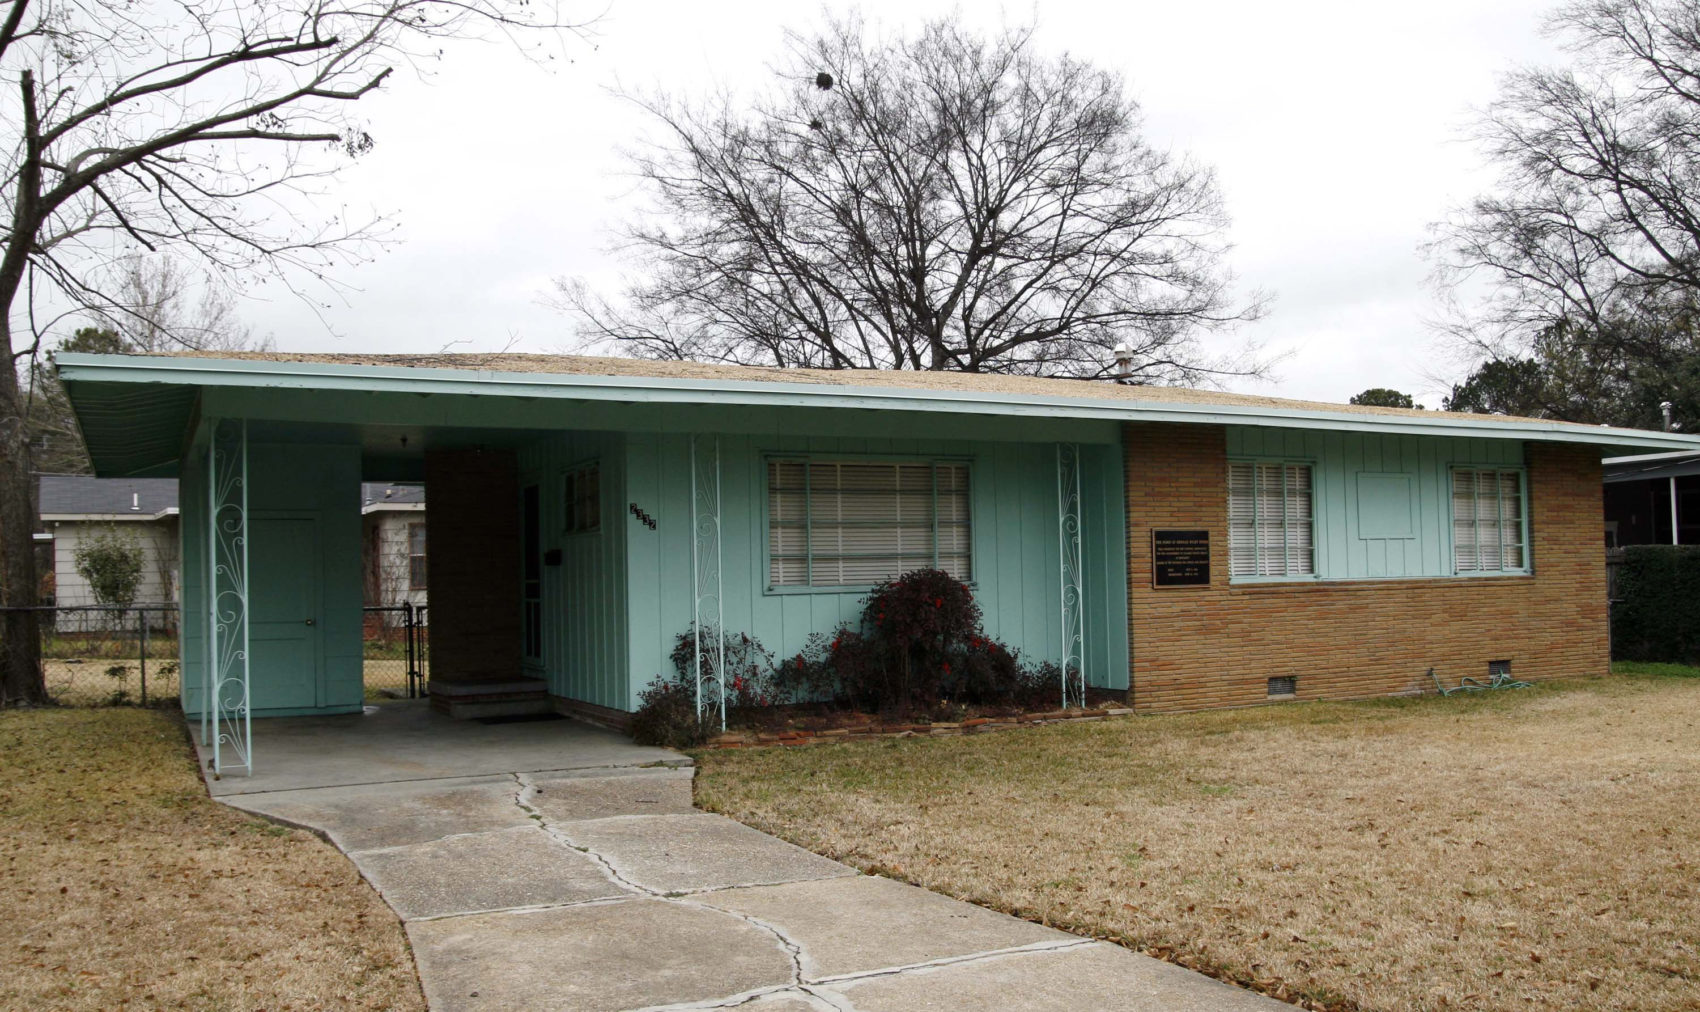 The house of slain civil rights leader Medgar Evers is seen in Jackson, Miss. (Rogelio V. Solis/AP)